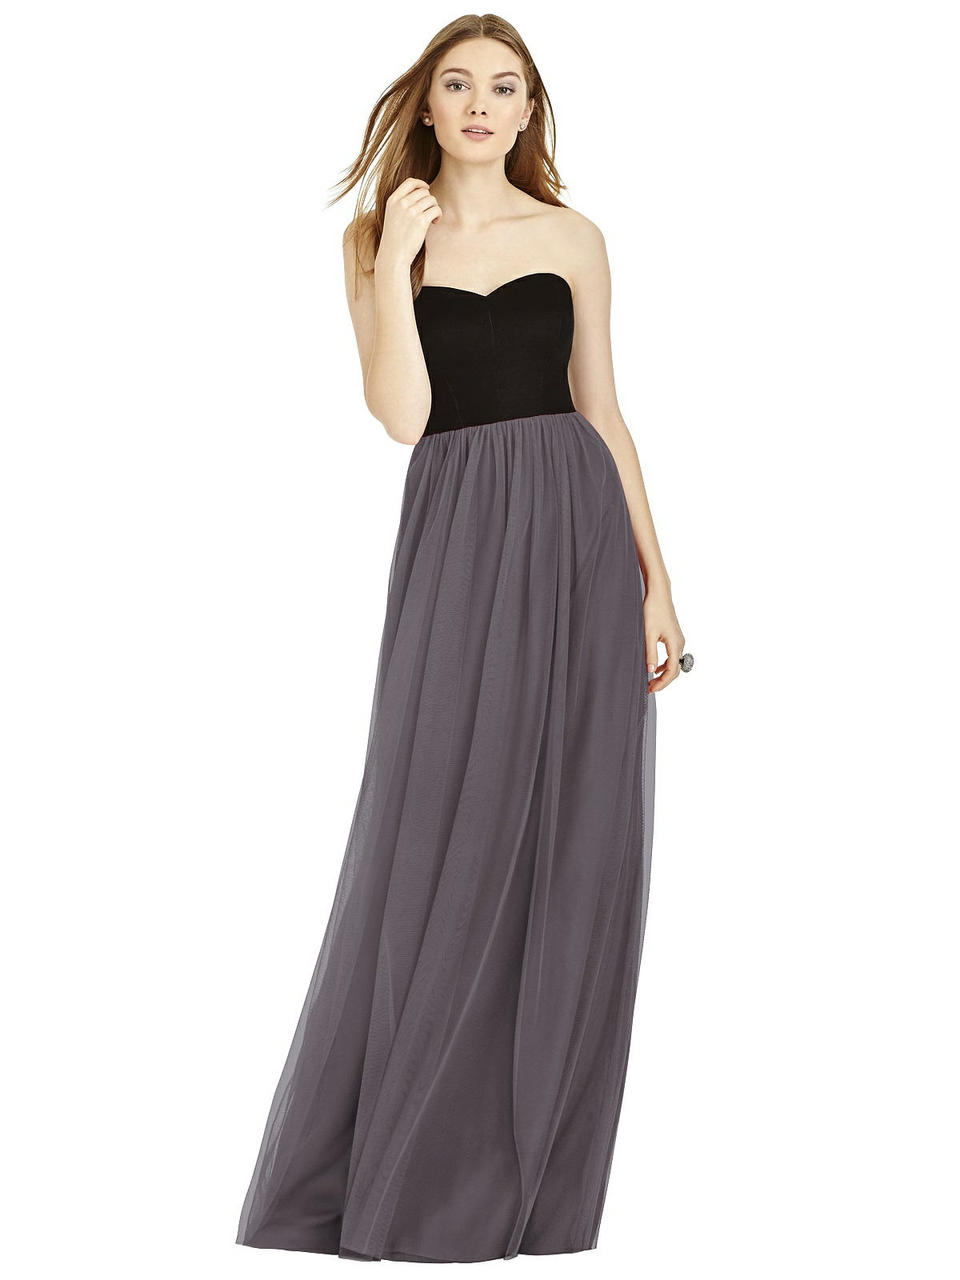 8fcd23b6a4b Studio Design Shimmer Bridesmaid Dress 4506. Tap to expand